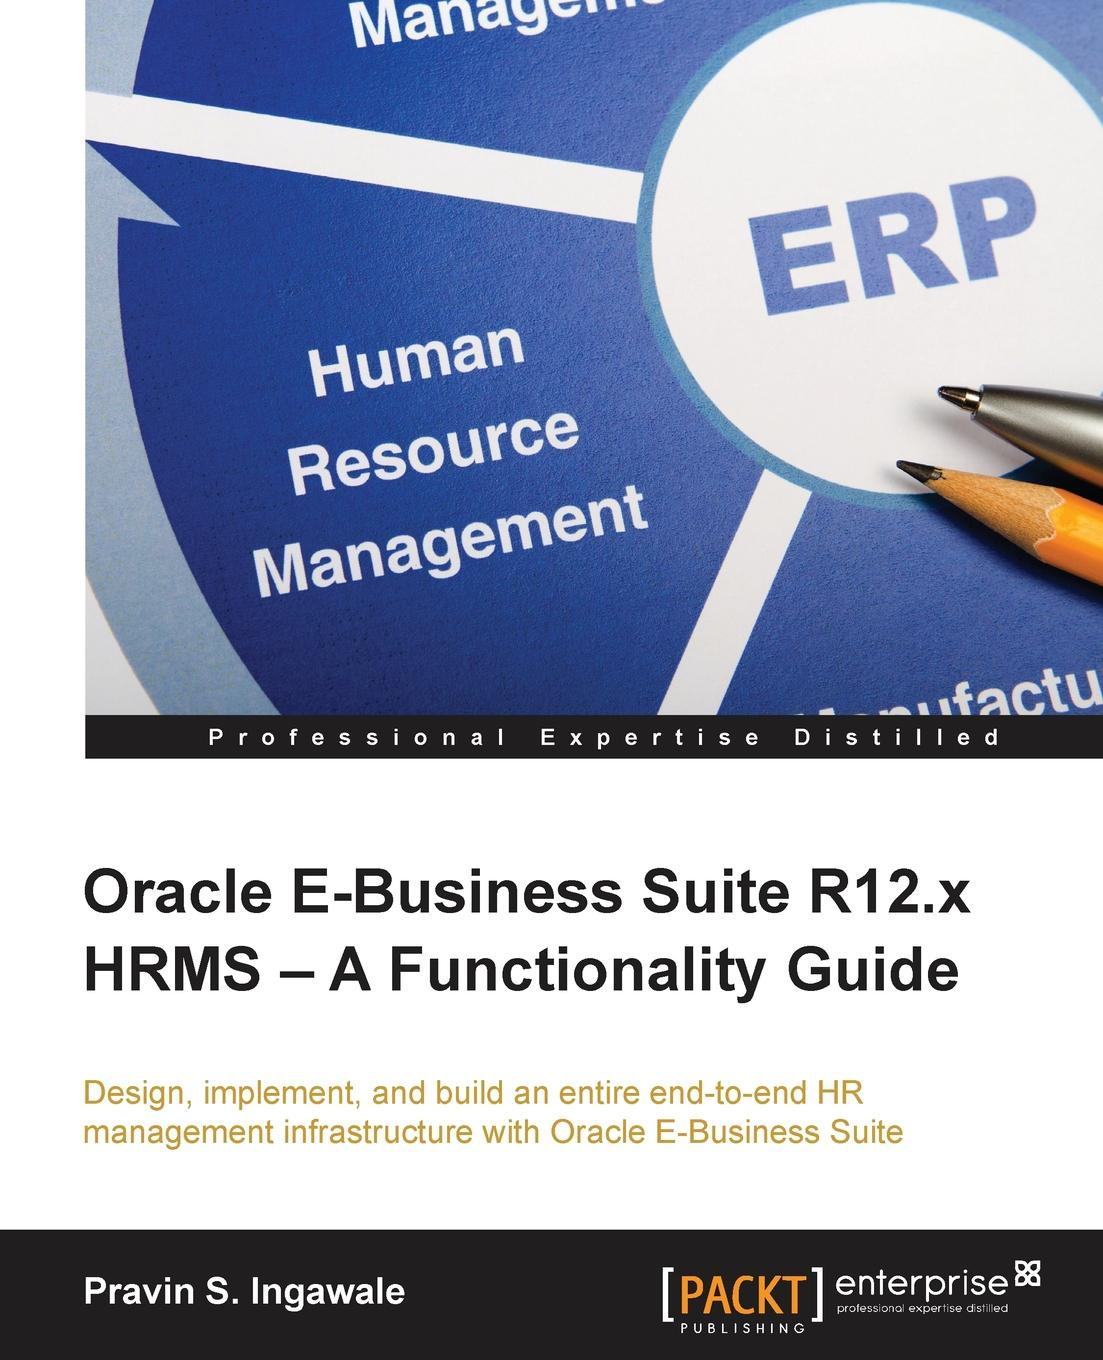 Pravin S. Ingawale Oracle E-Business Suite R12.x HRMS - A Functionality Guide запчасть rubena r12 tomcat 29 x 2 10